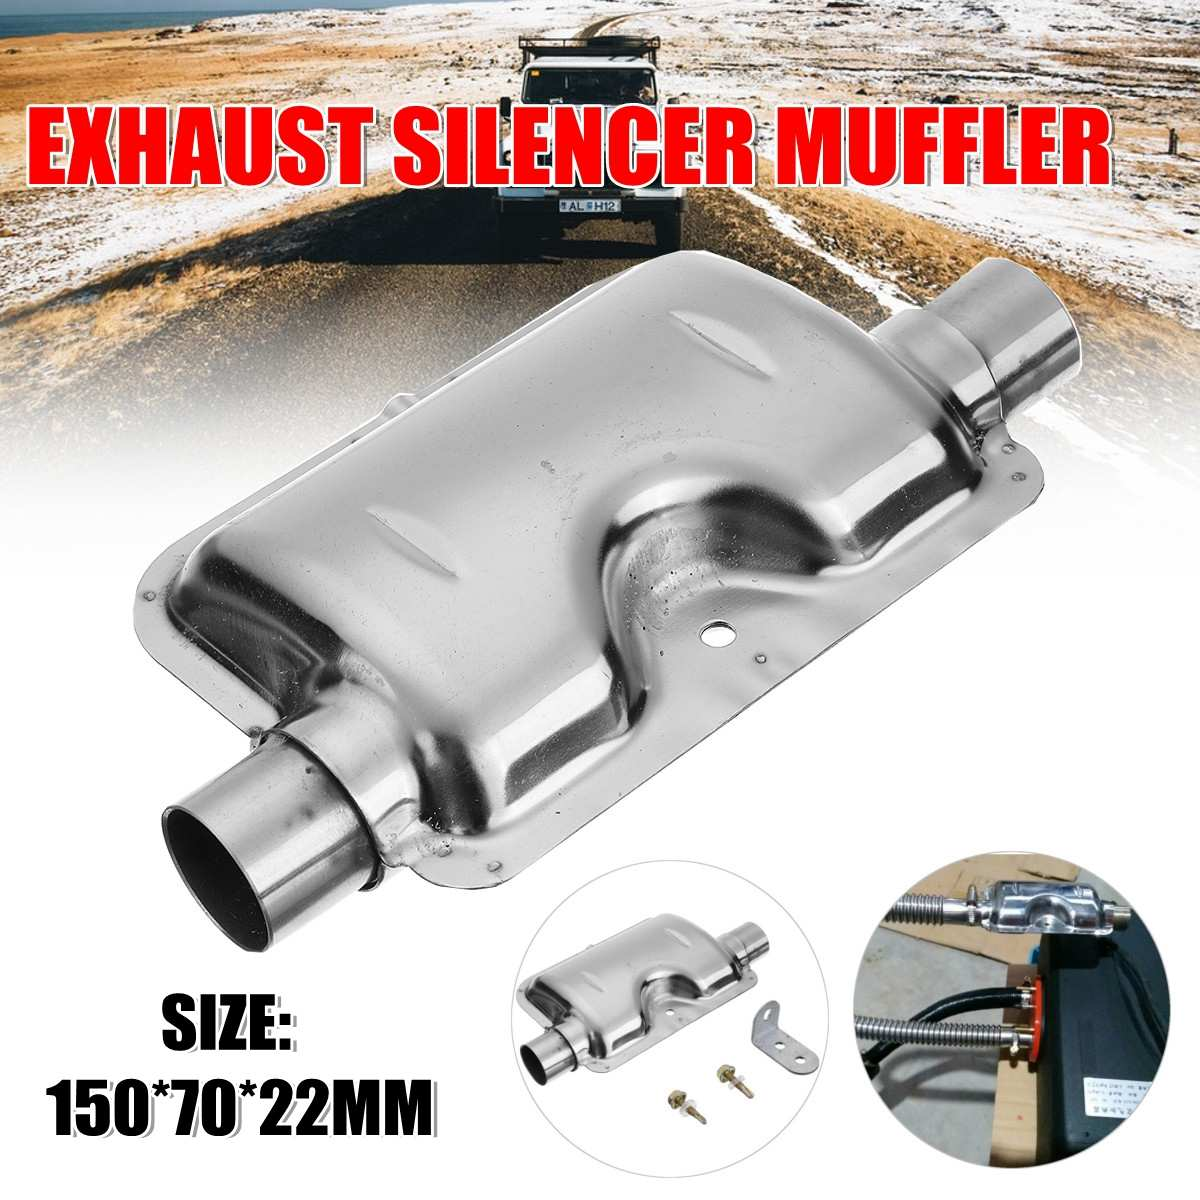 Parking heater stainless steel exhaust muffler 24mm and Exhaust Pipe suitable for car air diesel genuine Car Accessories(China)